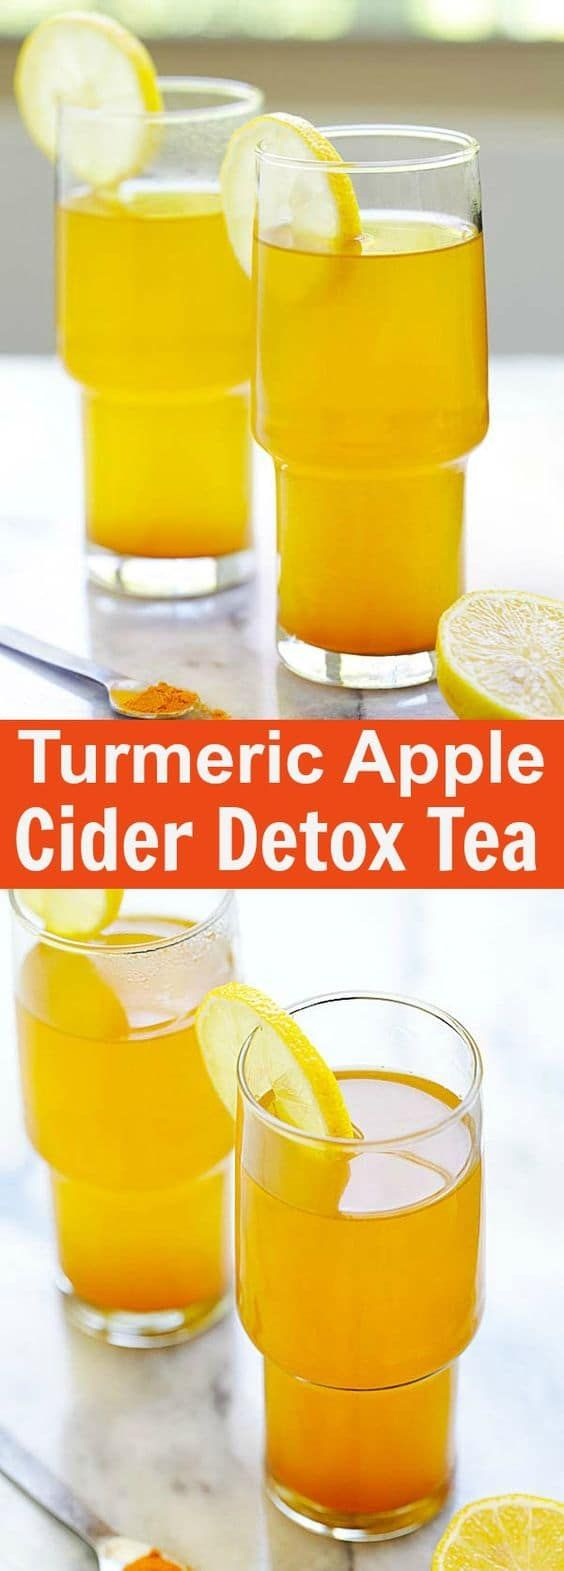 Turmeric and Apple Cider Vinegar Detox Tea – healthy detox tea made with turmeric, apple cider vinegar and honey. A beverage that you can drink daily   rasamalaysia.com